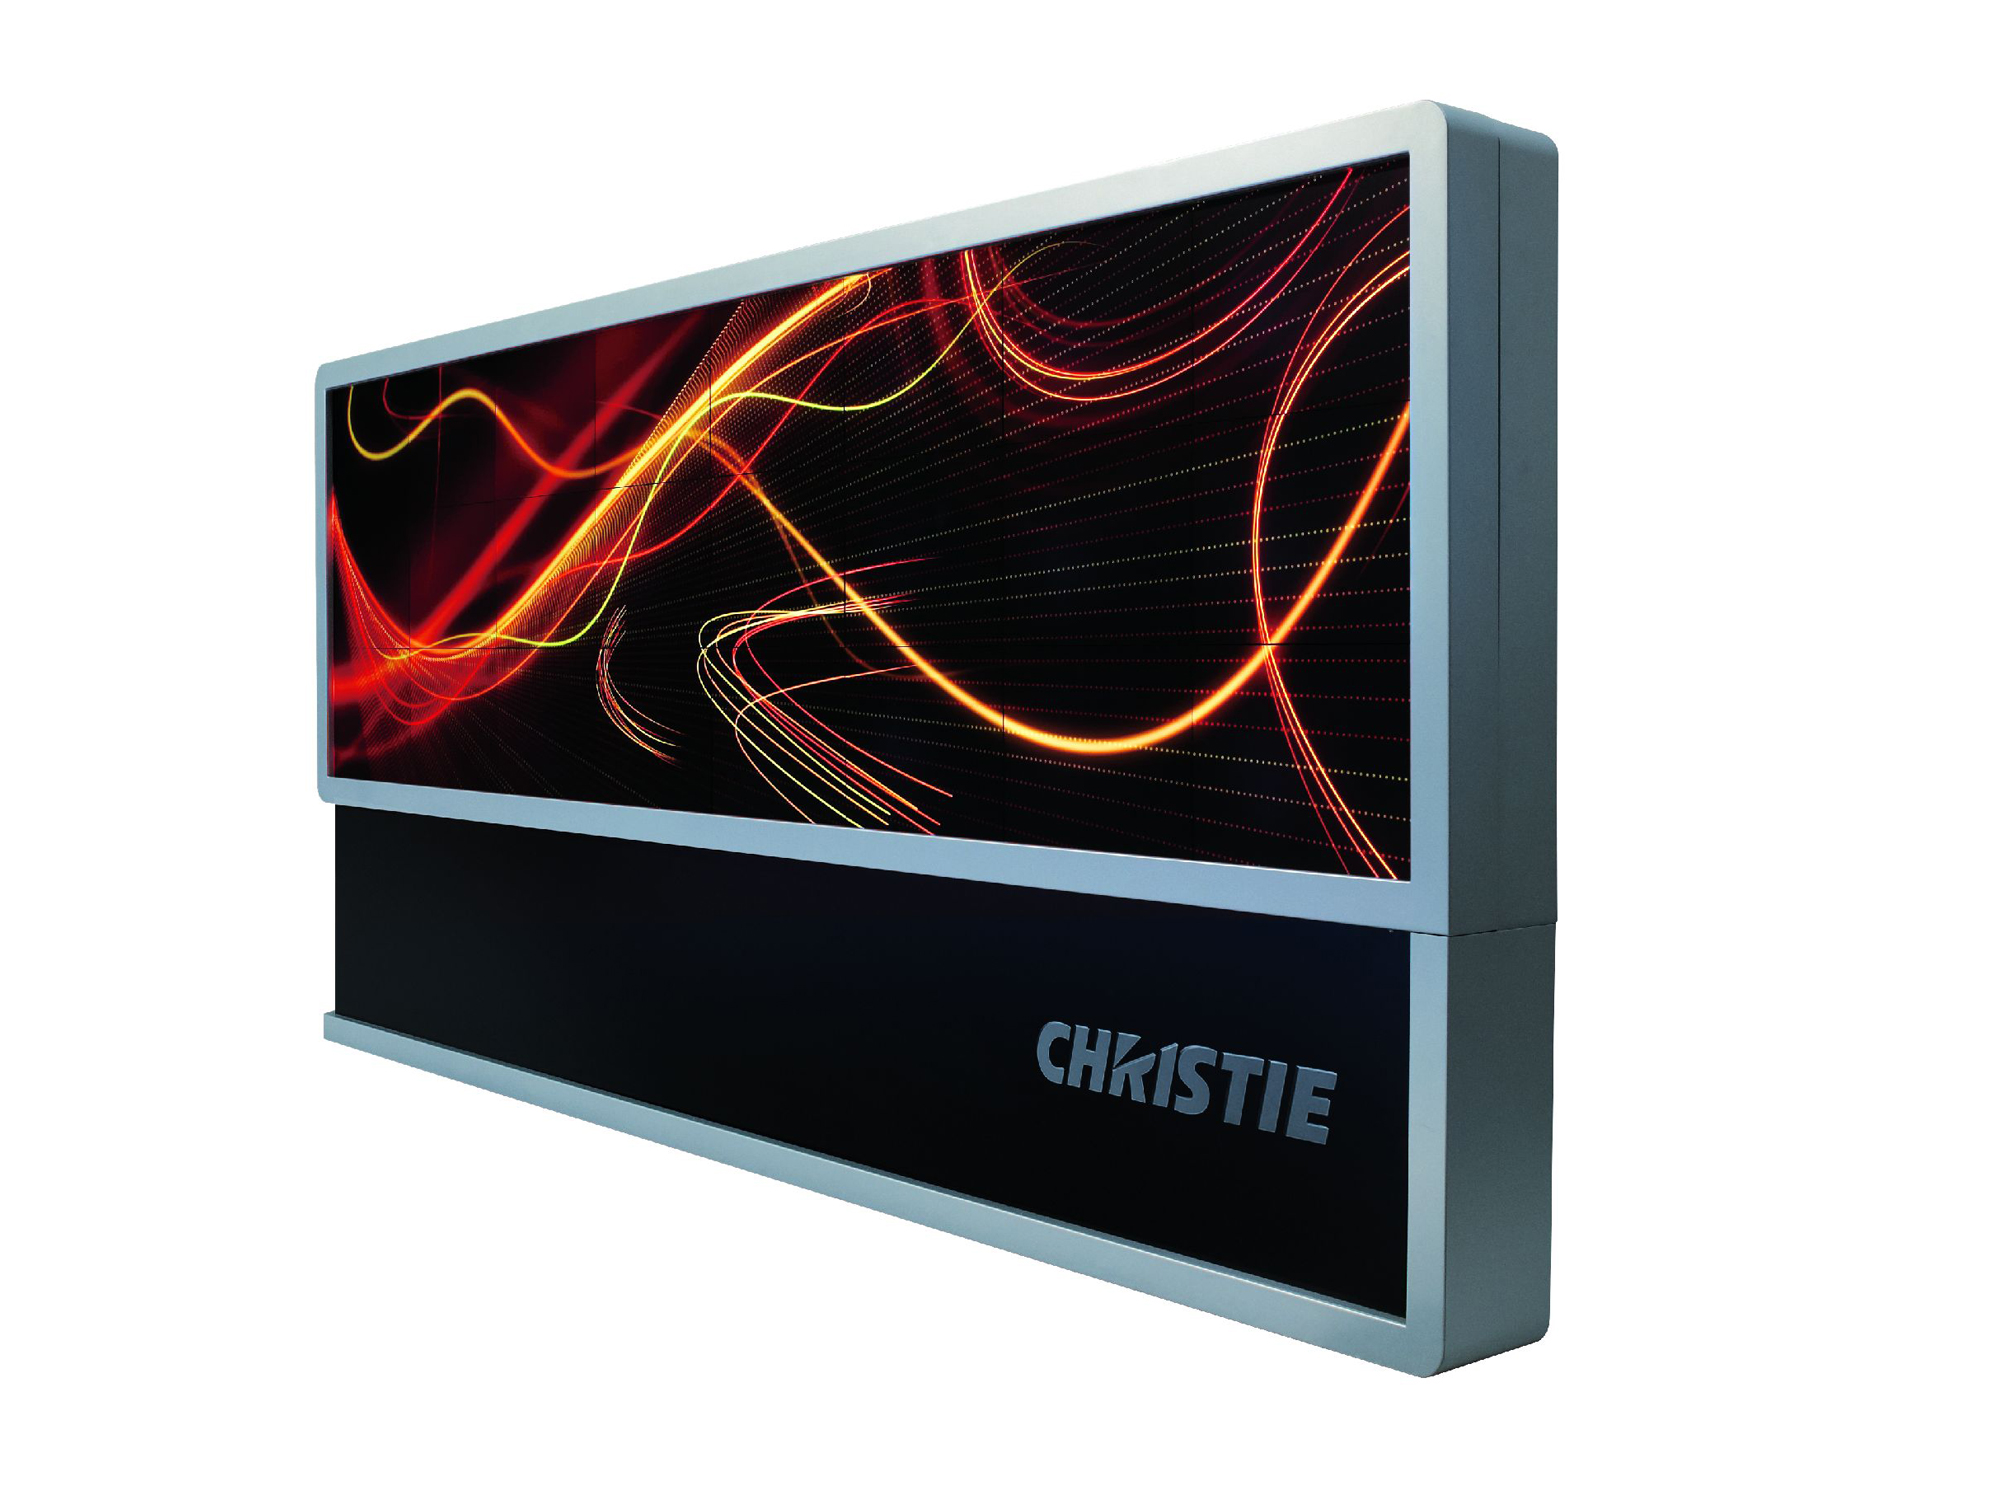 /globalassets/.catalog/products/images/microtiles/gallery/christie-microtiles-digital-signage-video-walls-image12.jpg